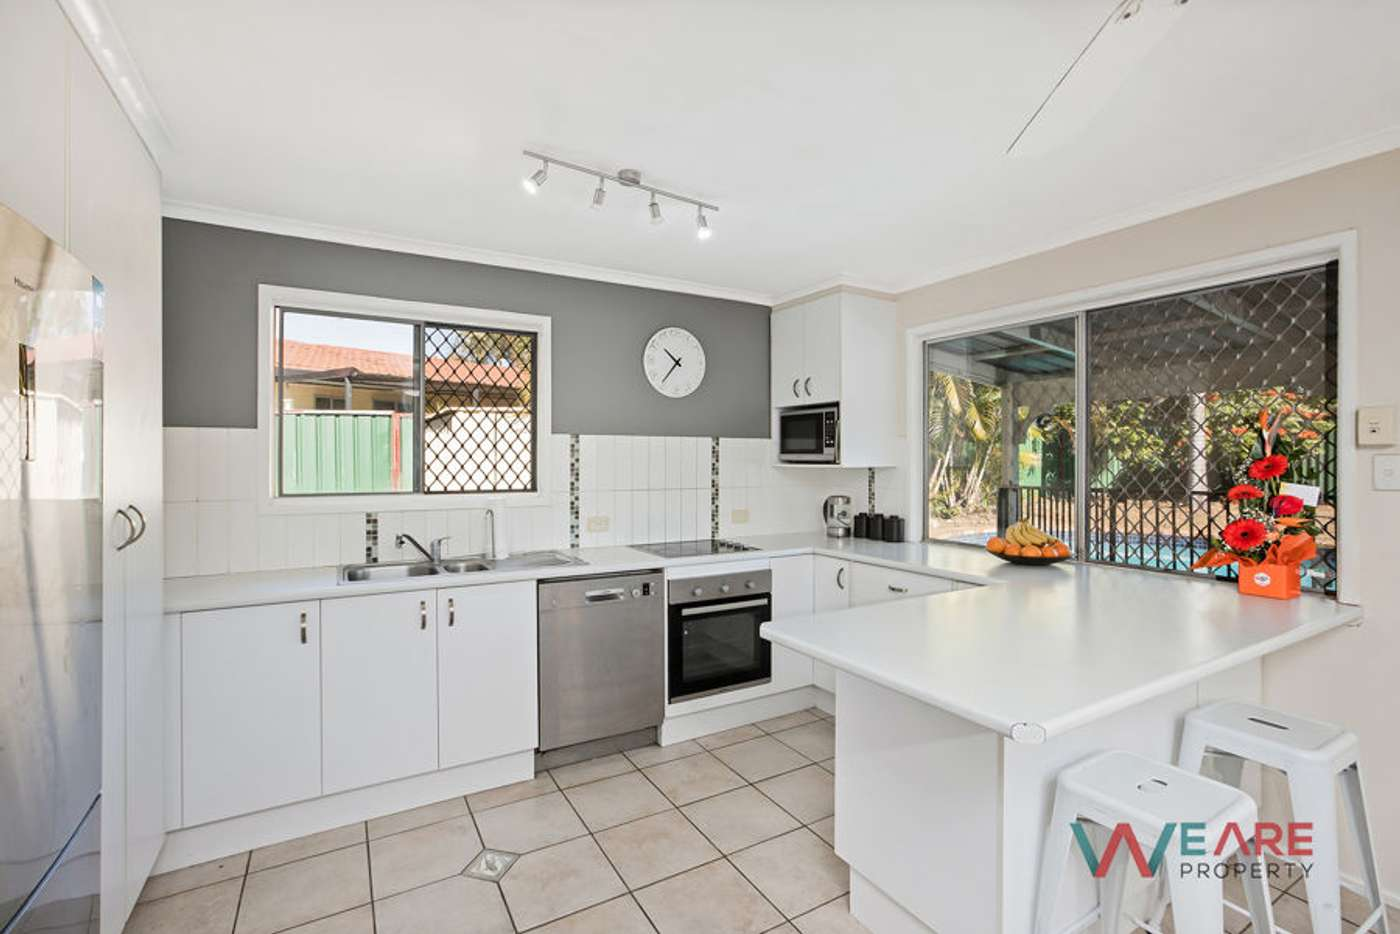 Fifth view of Homely house listing, 8 Birch St, Marsden QLD 4132